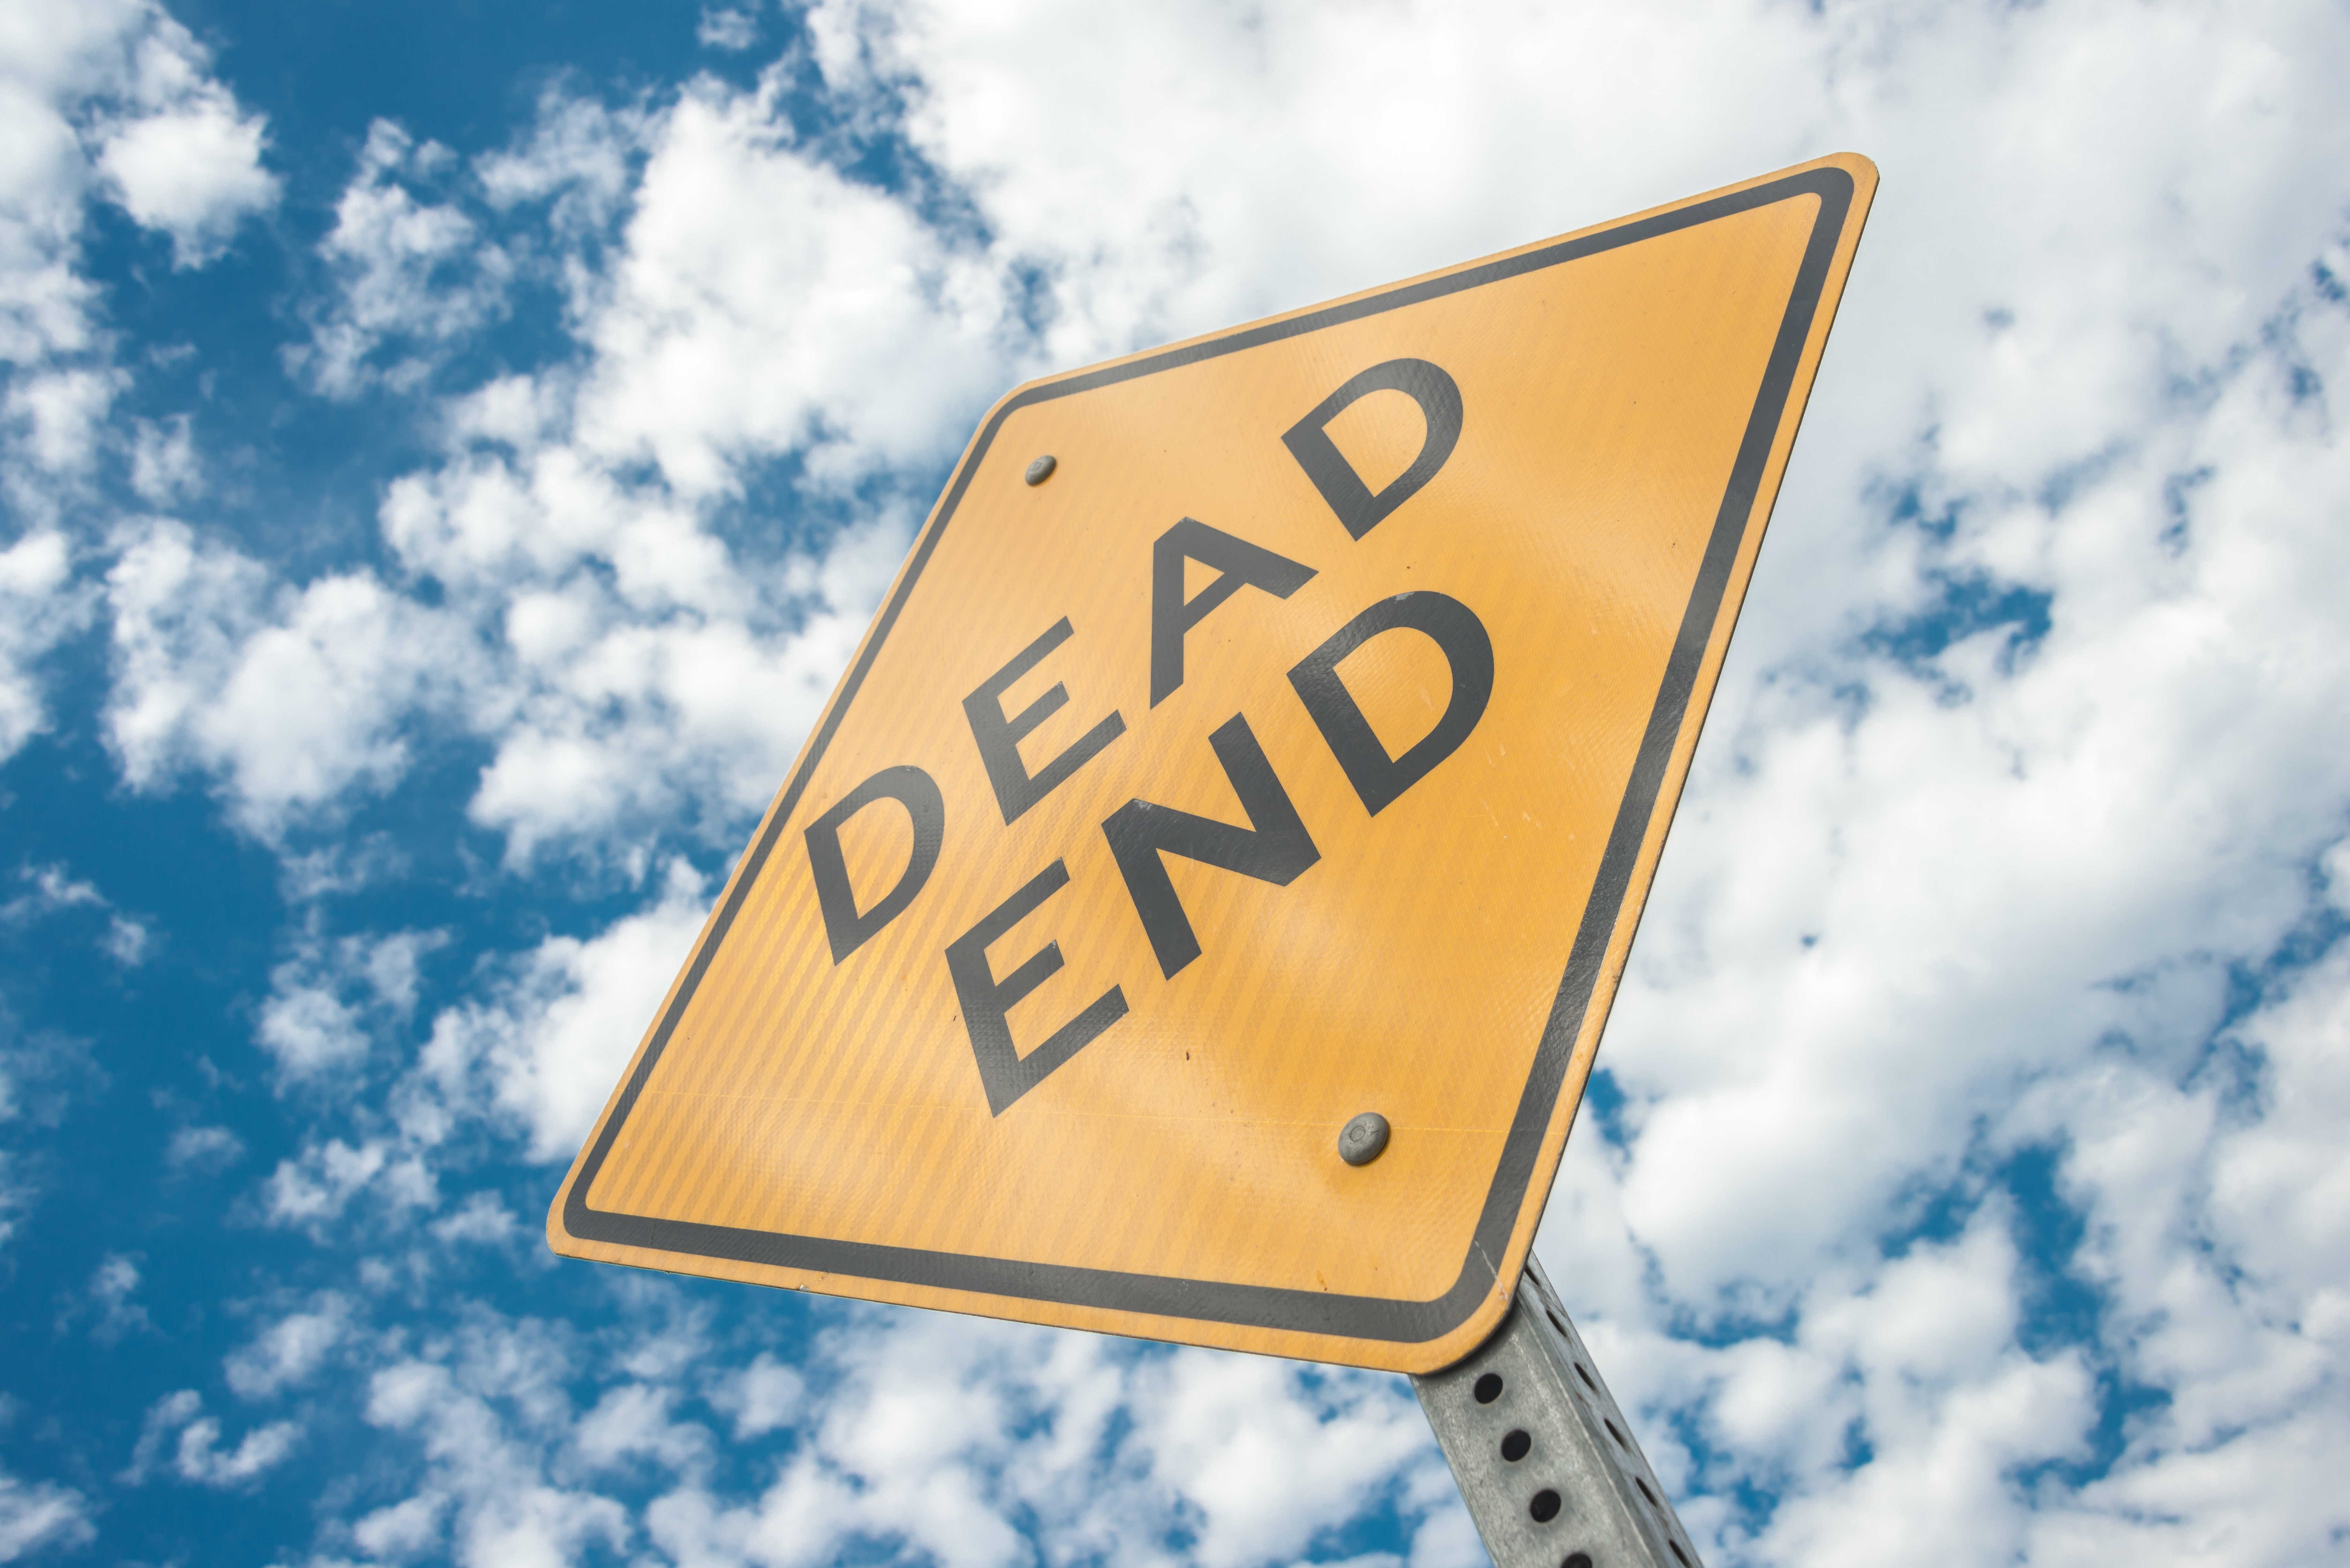 The End of the World as We Know it – I DON'T feel fine